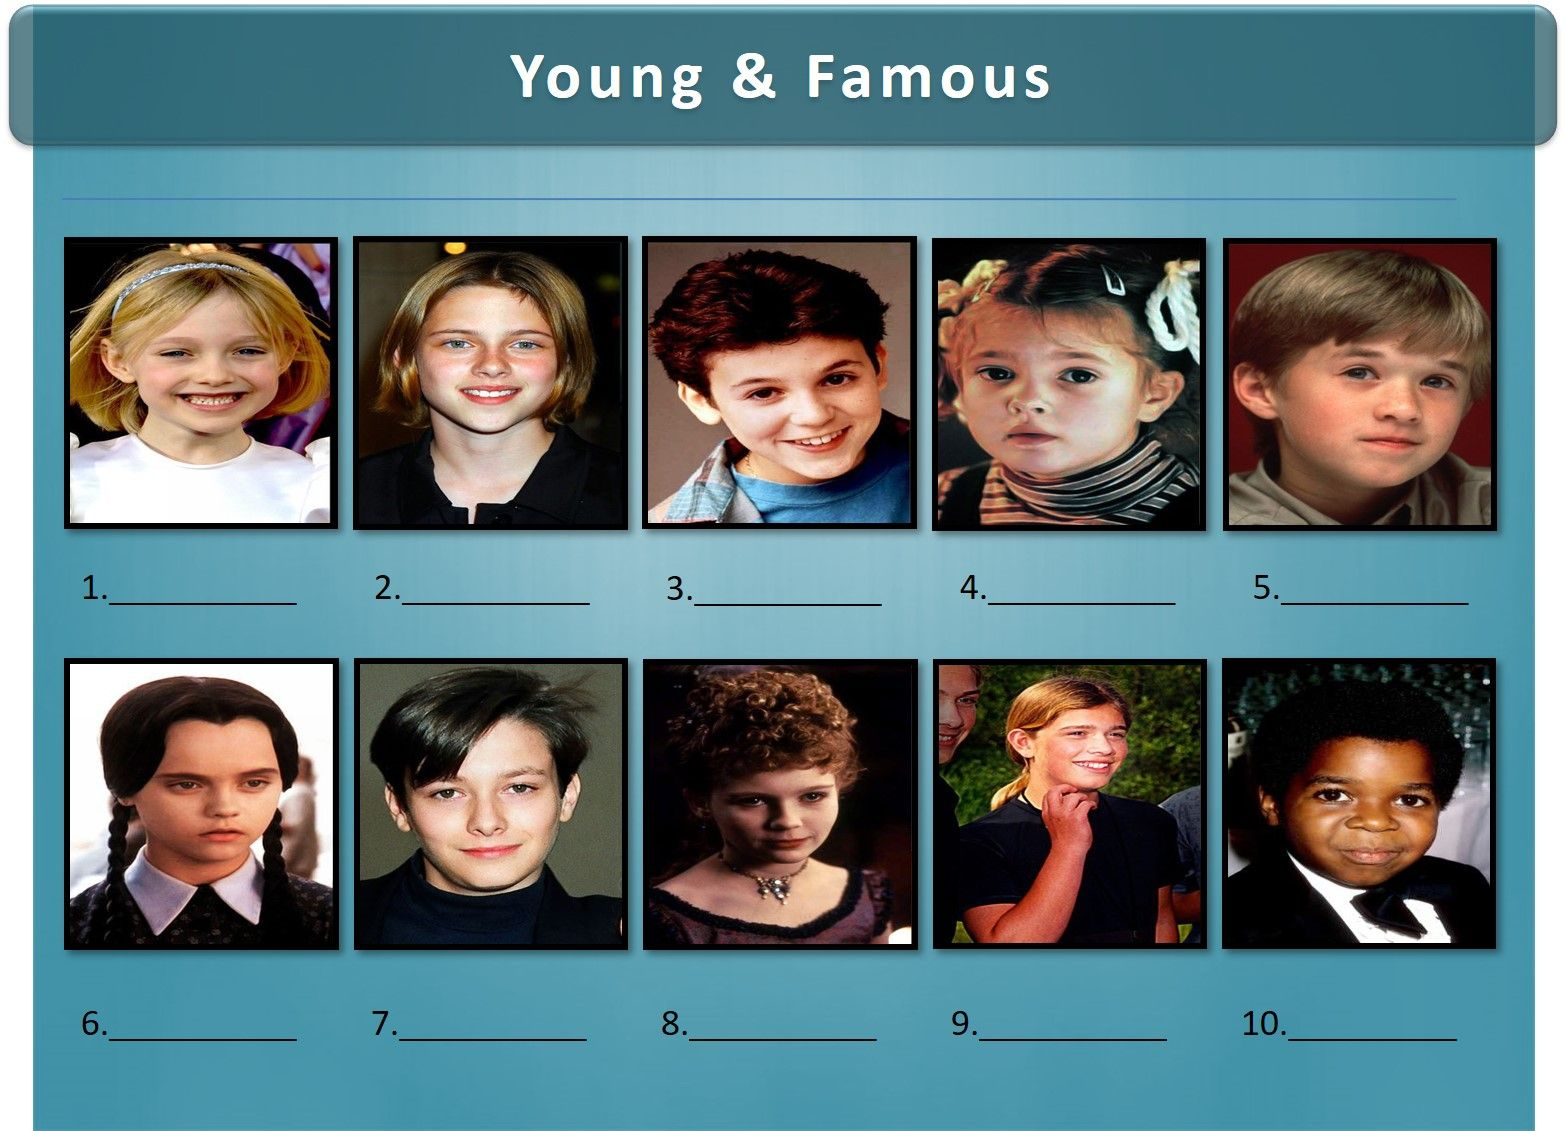 A sample picture round from one of our recent Trivia